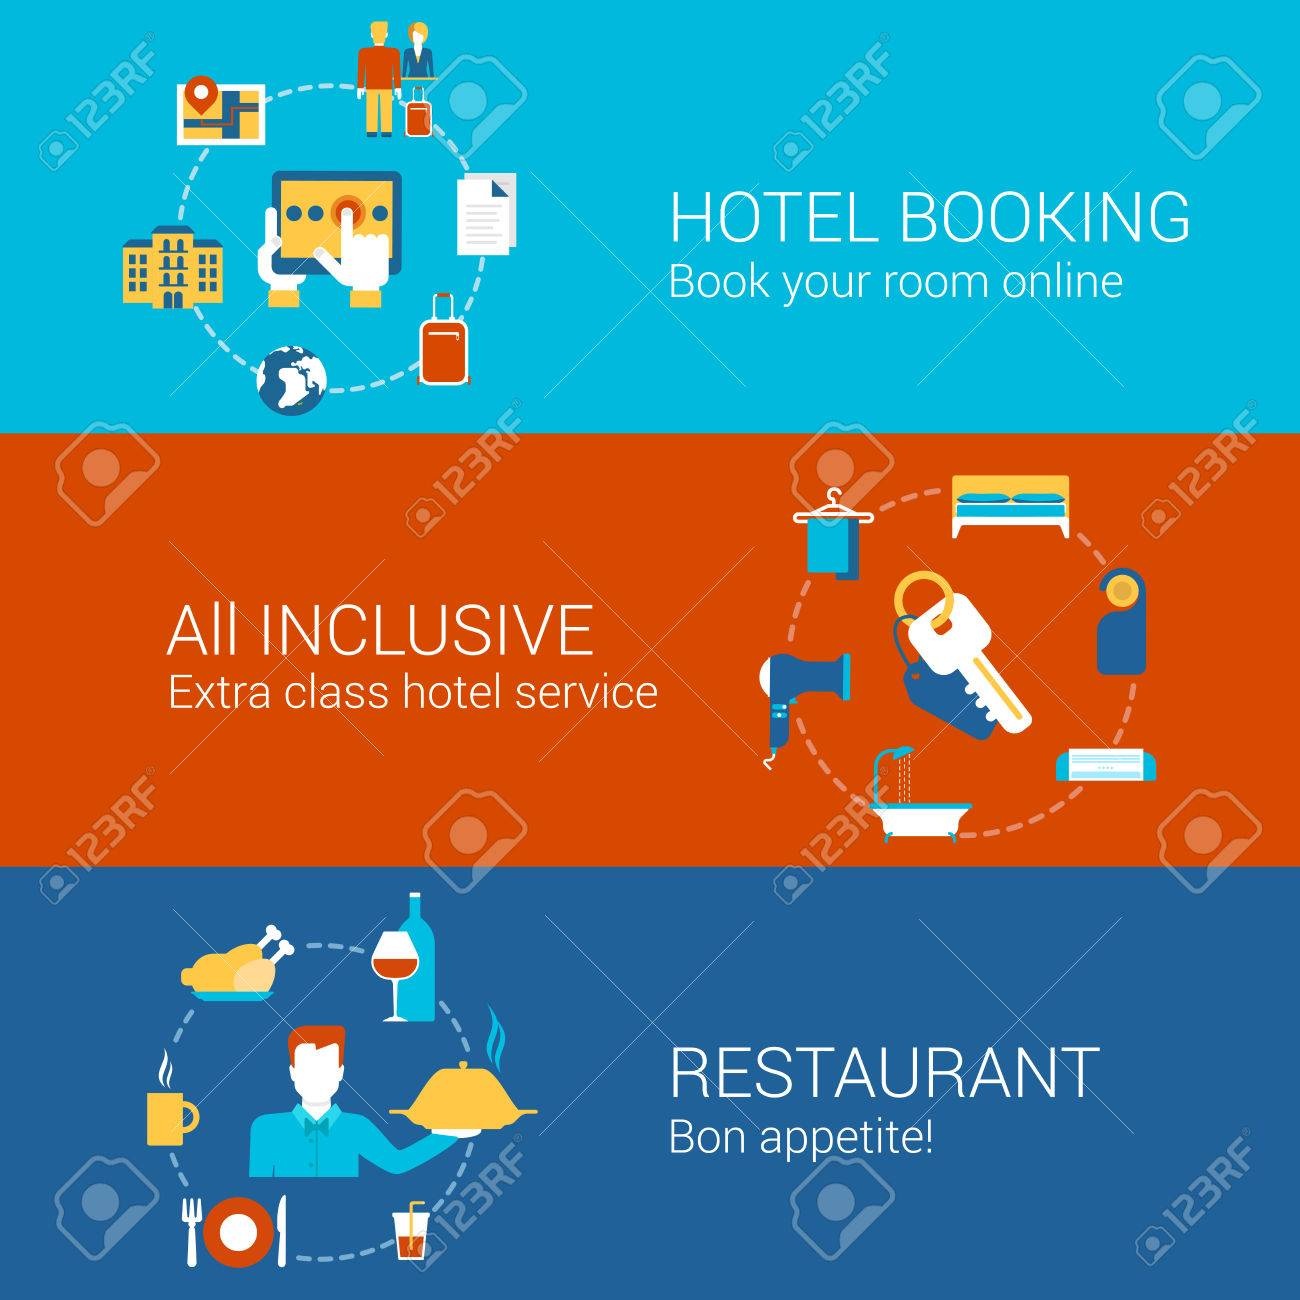 Hotel Booking Restaurant Travel Business Concept Flat Icons Set Of Hotels Online Book All Inclusive Service